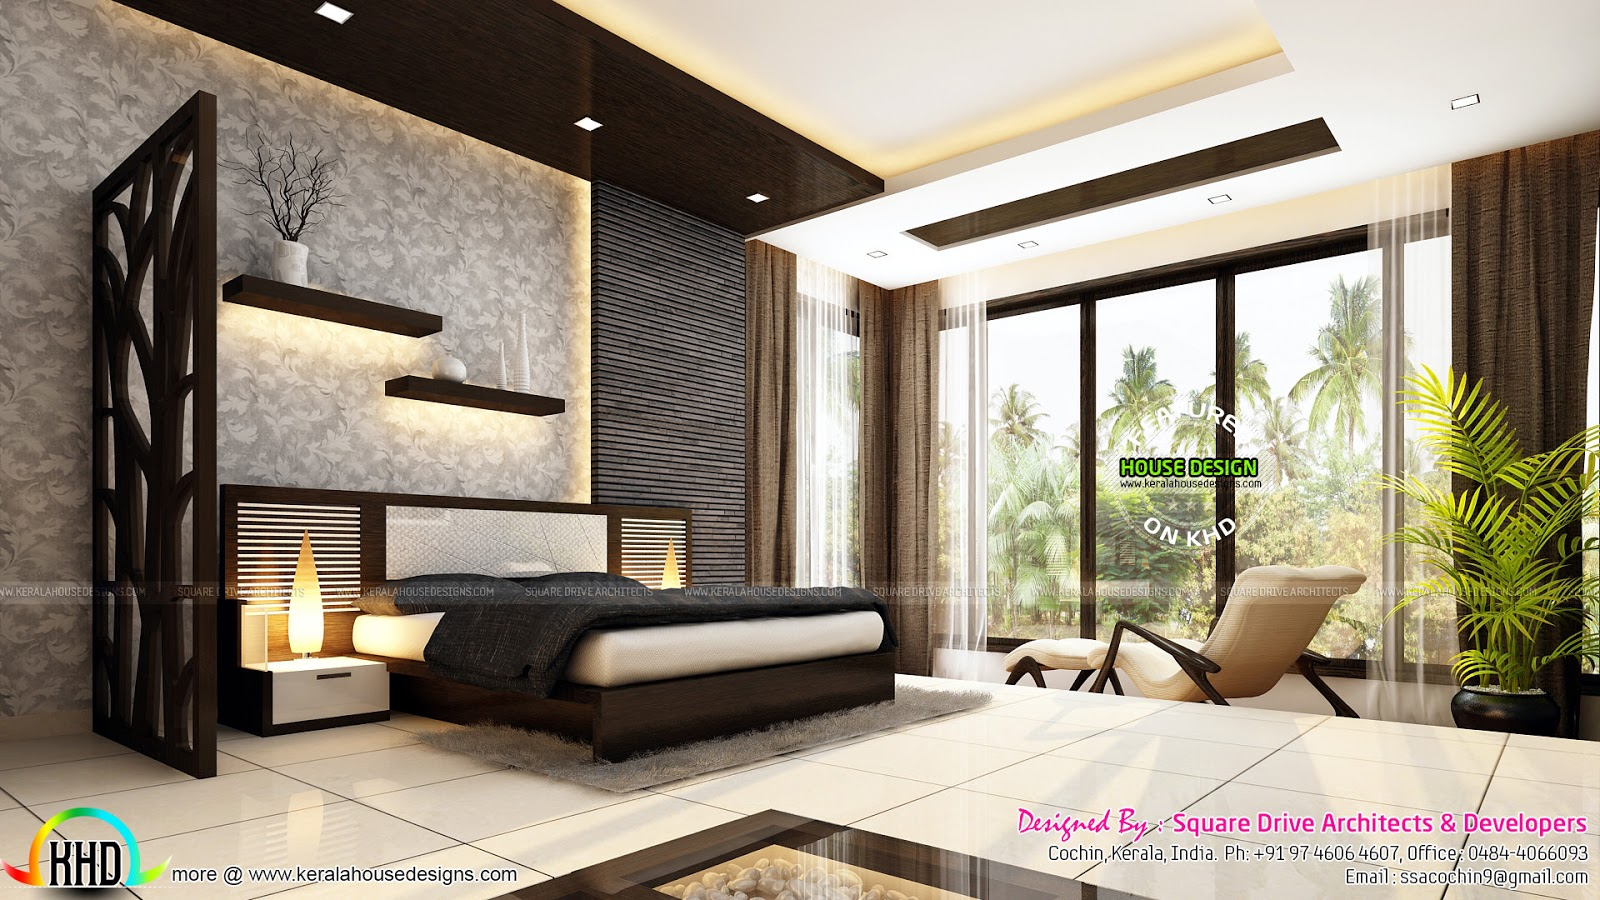 Very beautiful modern interior designs kerala home for House bedroom ideas